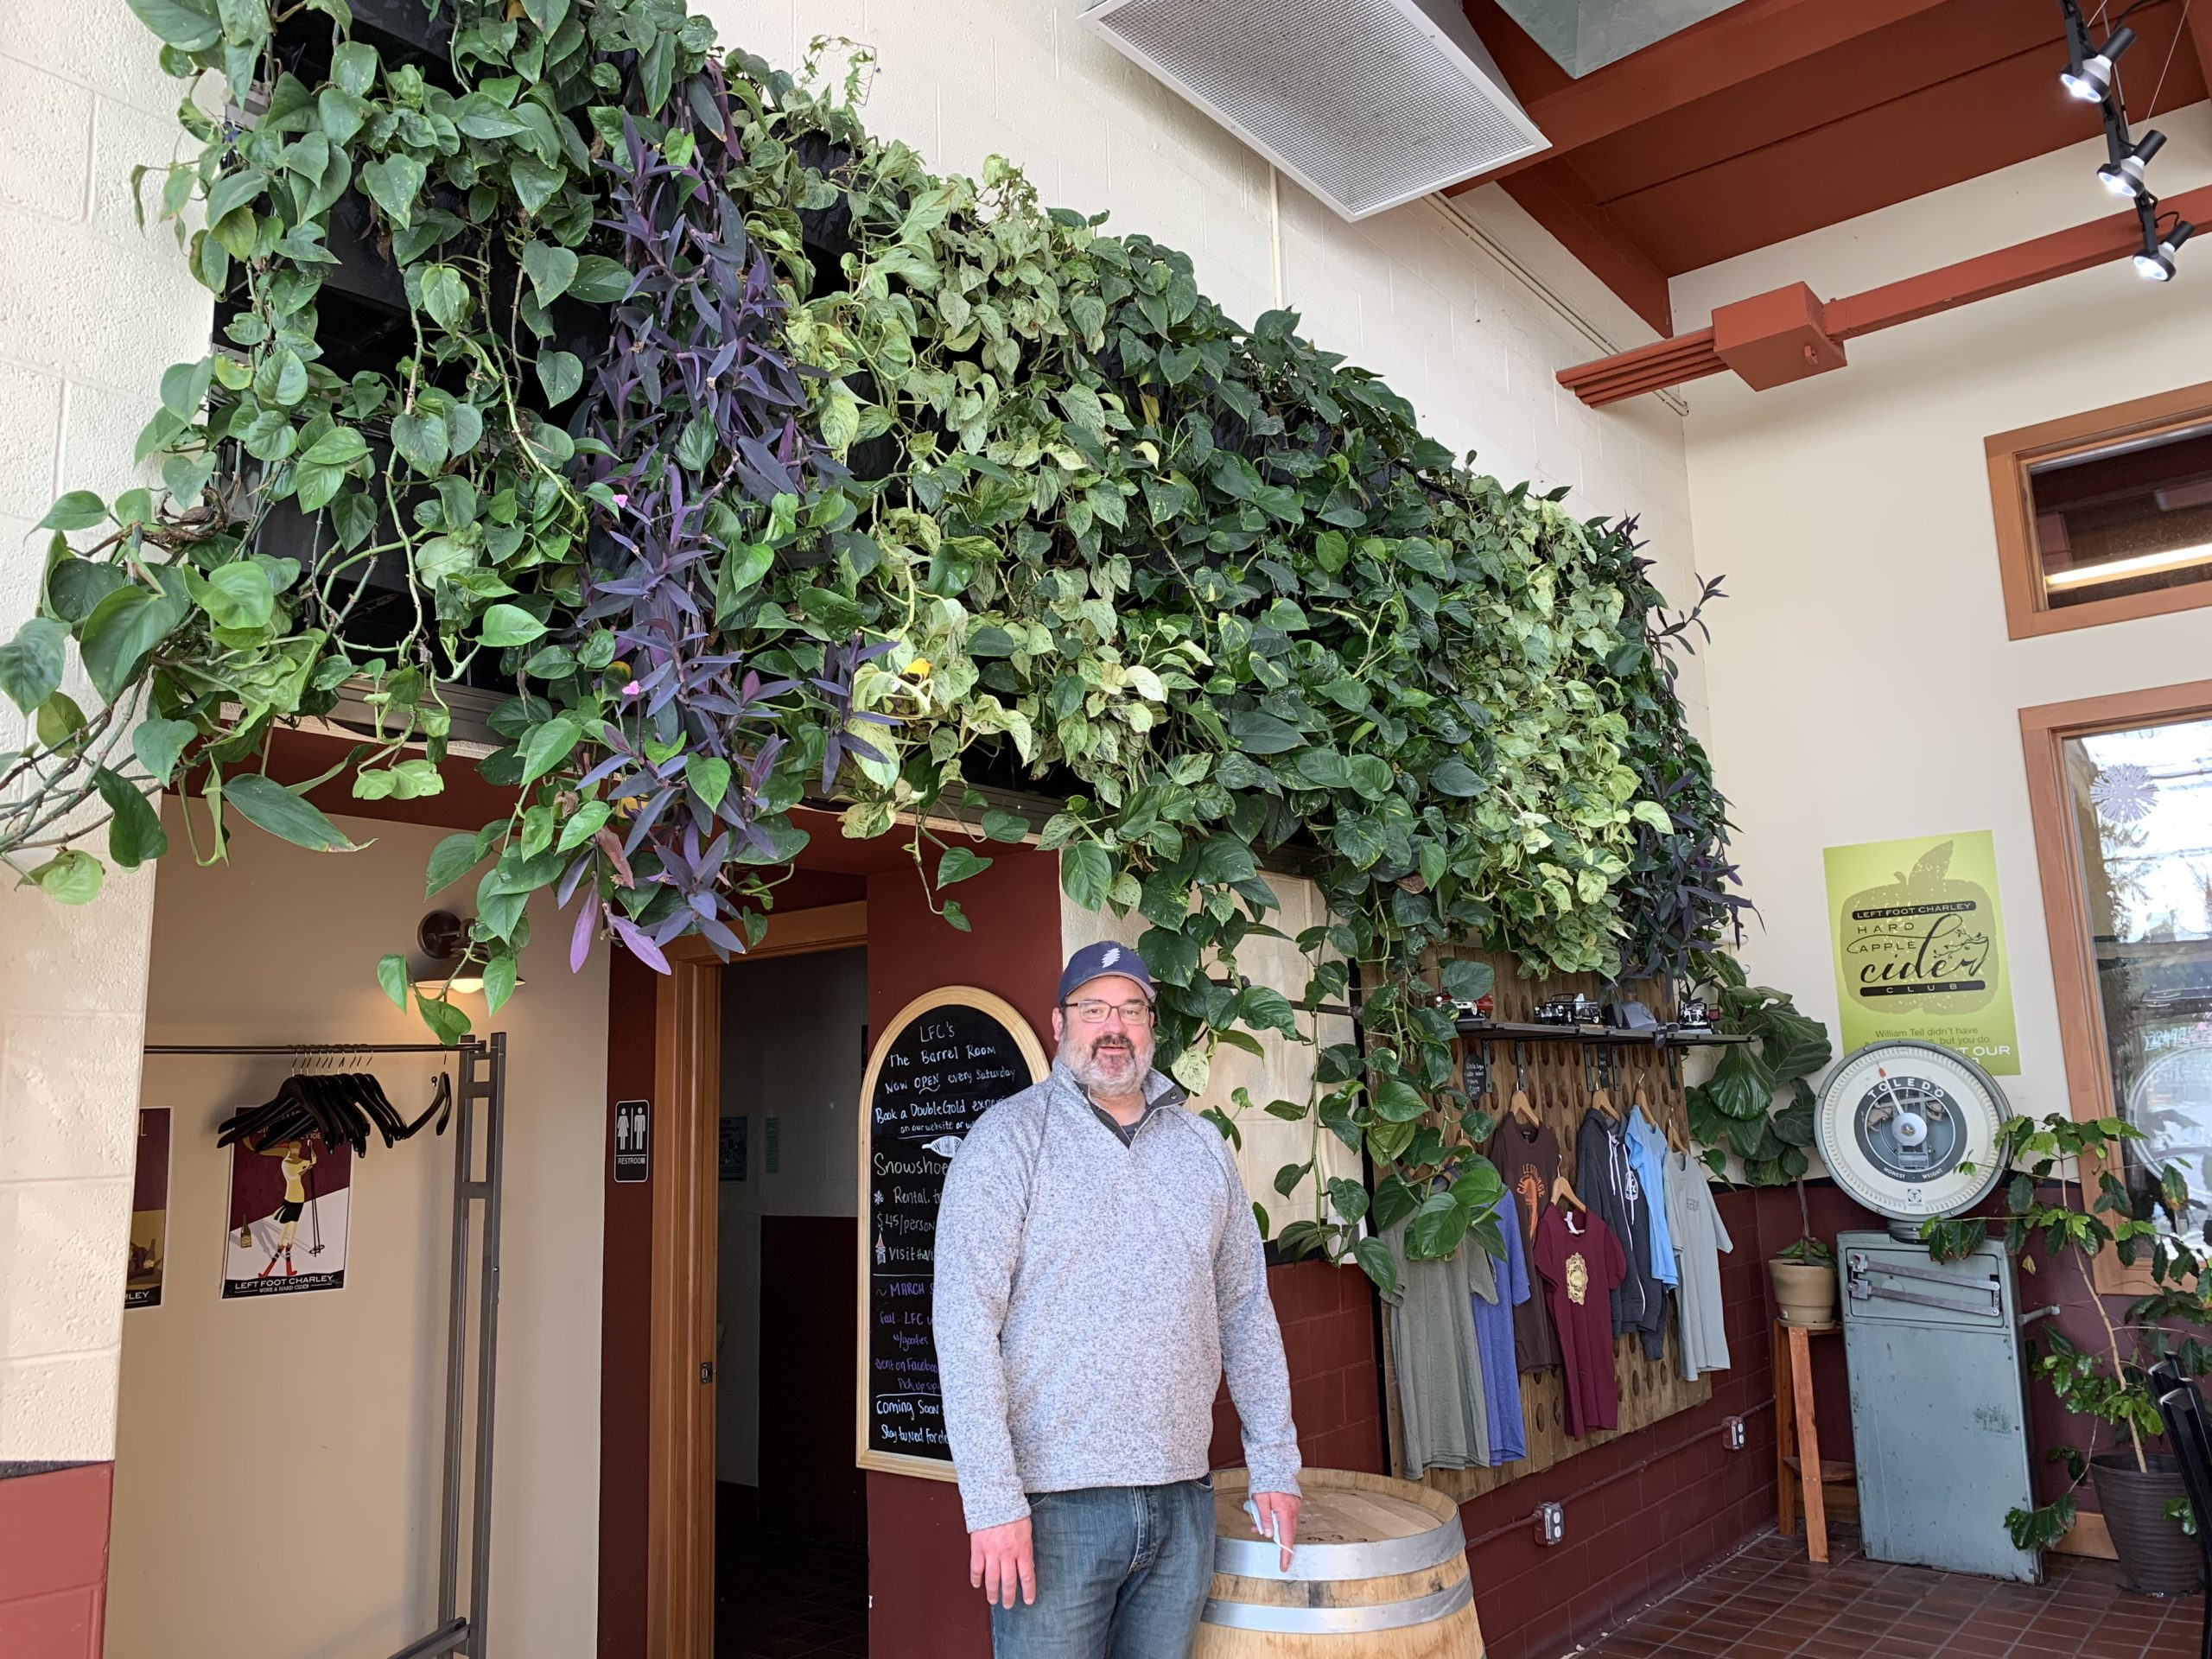 Left Foot Charley owner Bryan Ulbrich standing under his winery's green wall